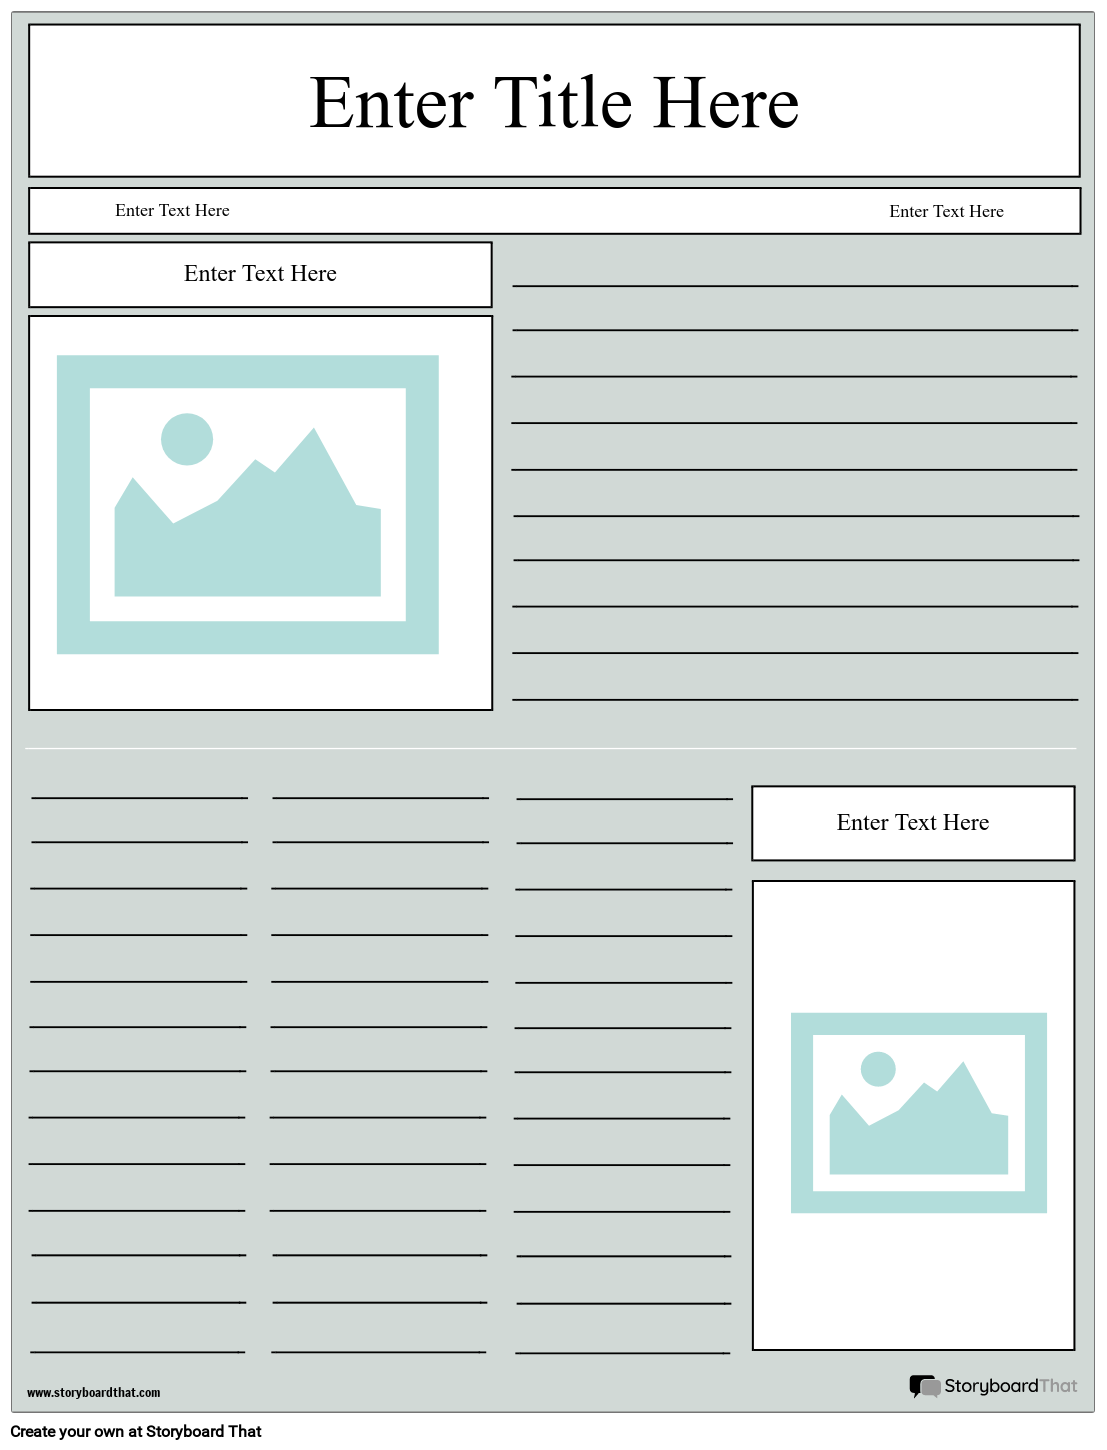 Newspaper Layout Storyboard by worksheet-templates